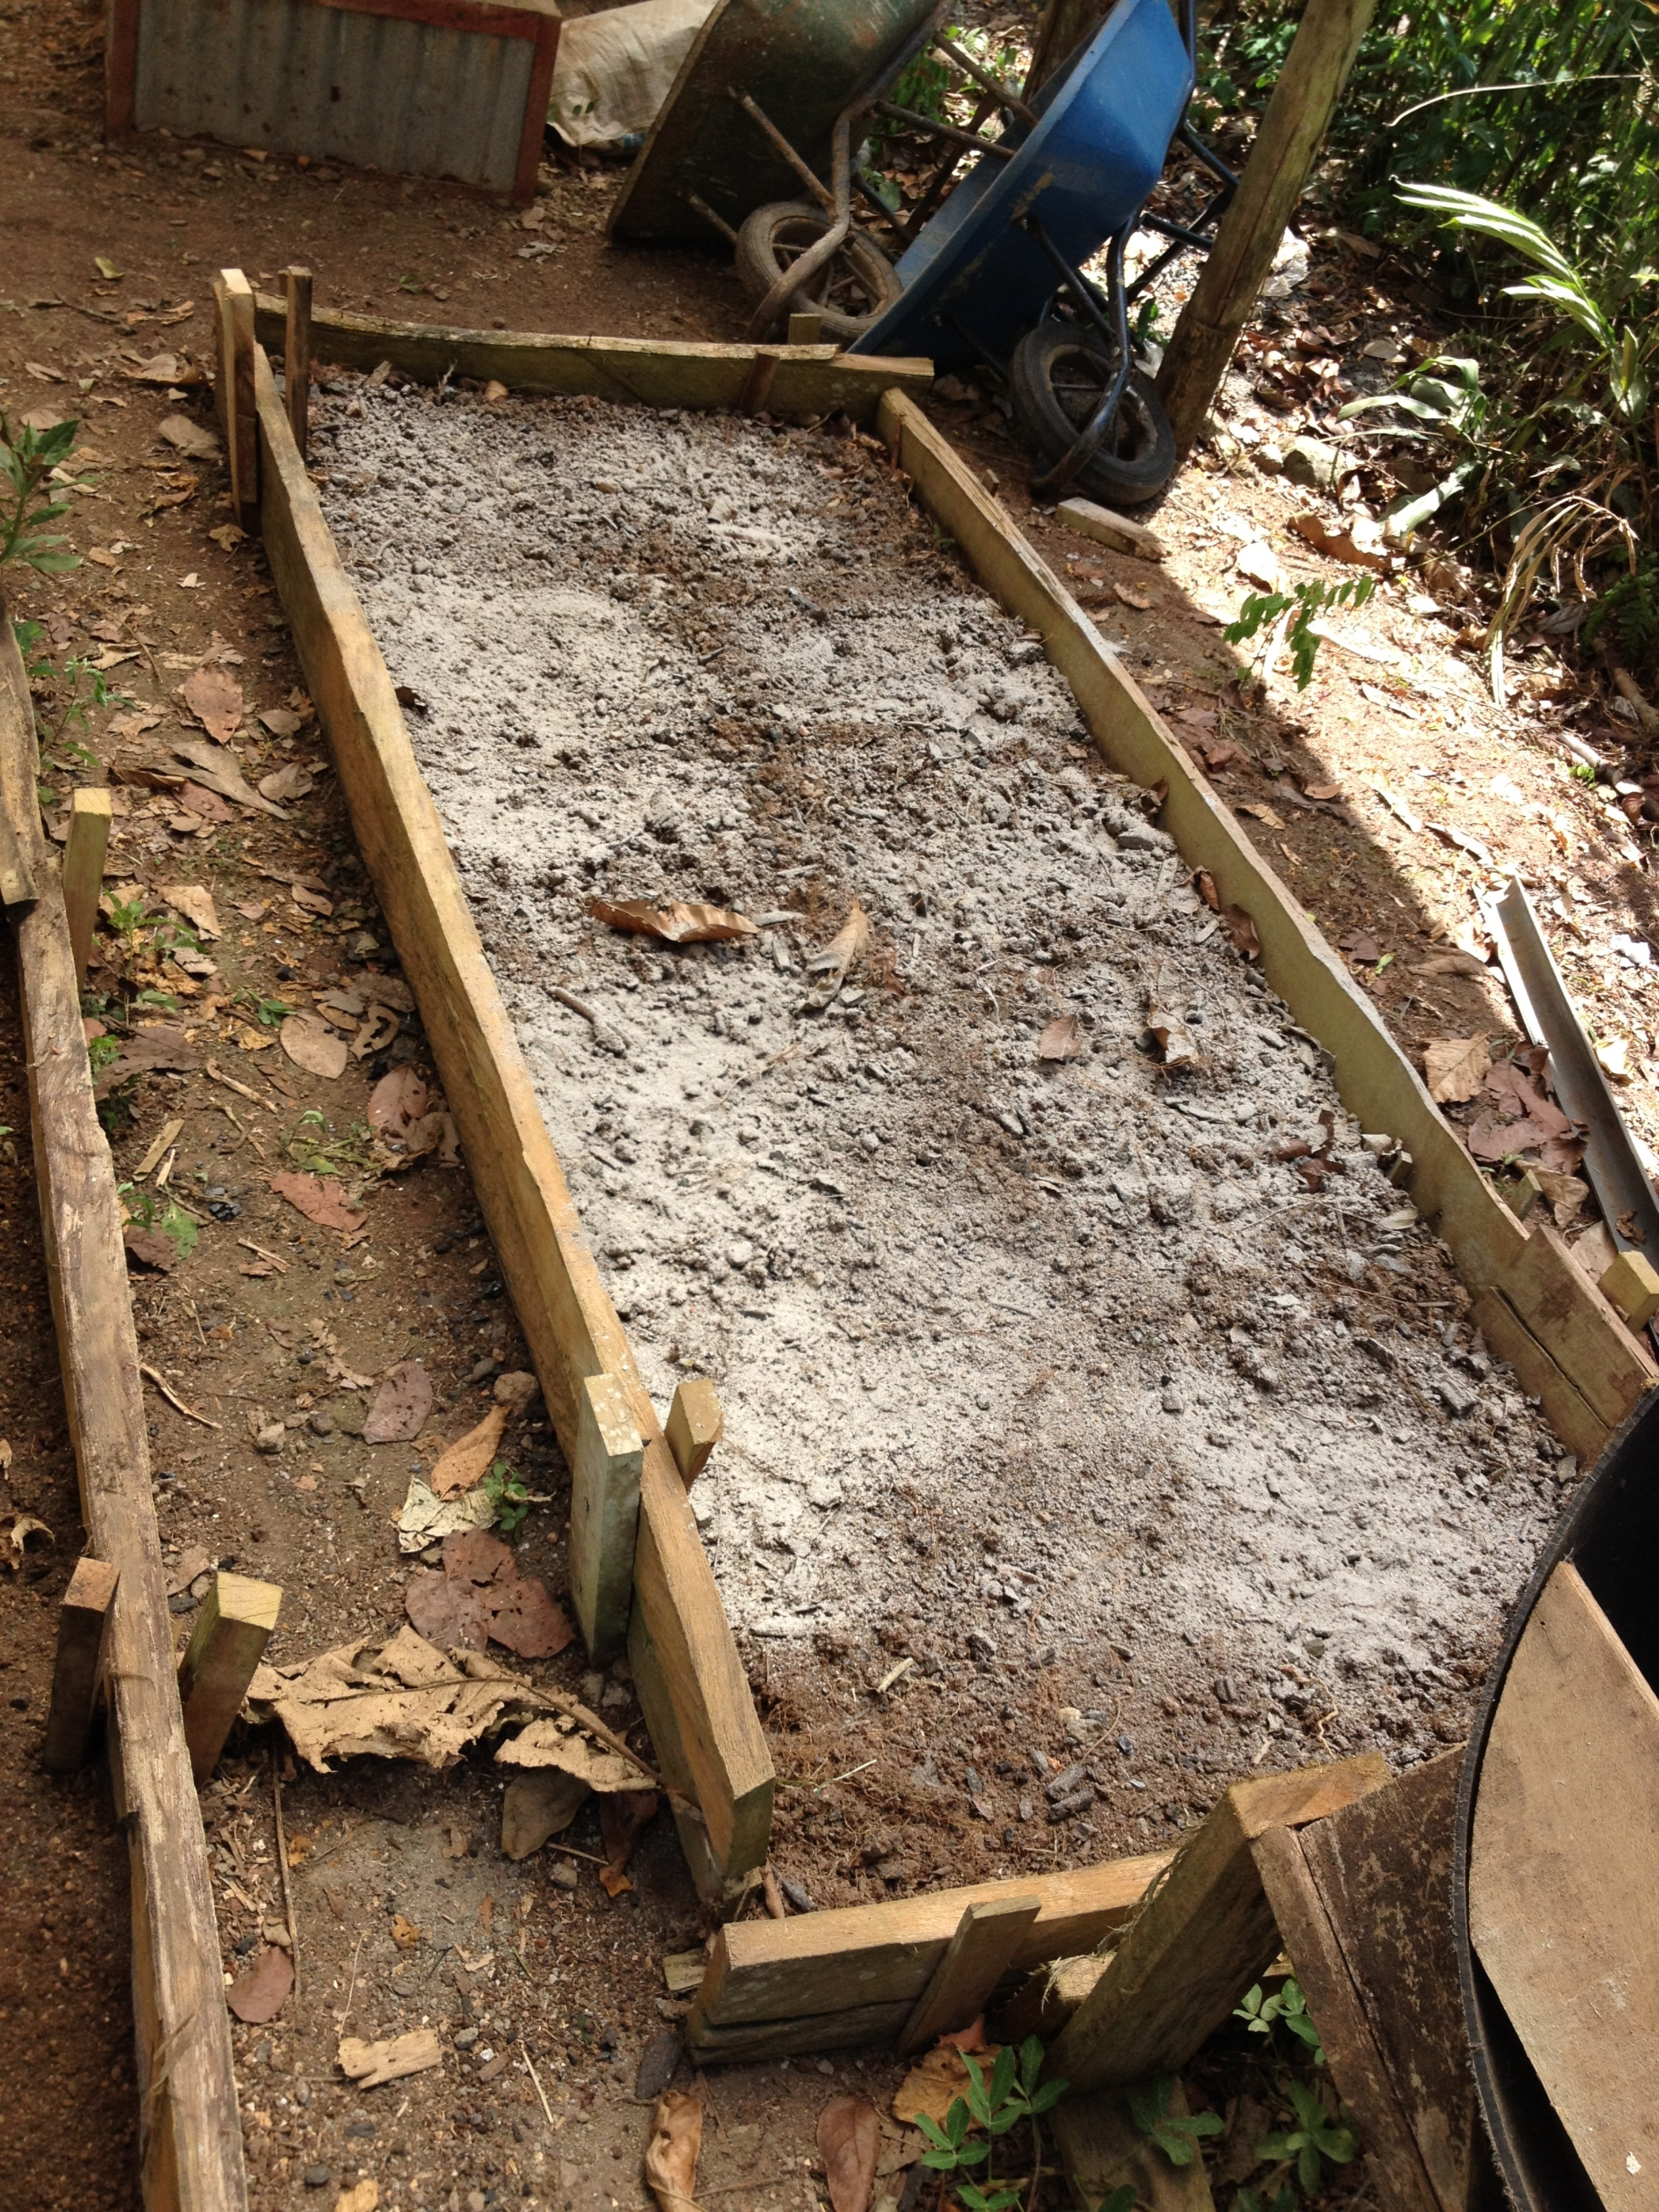 Lime applied to a raised garden bed.